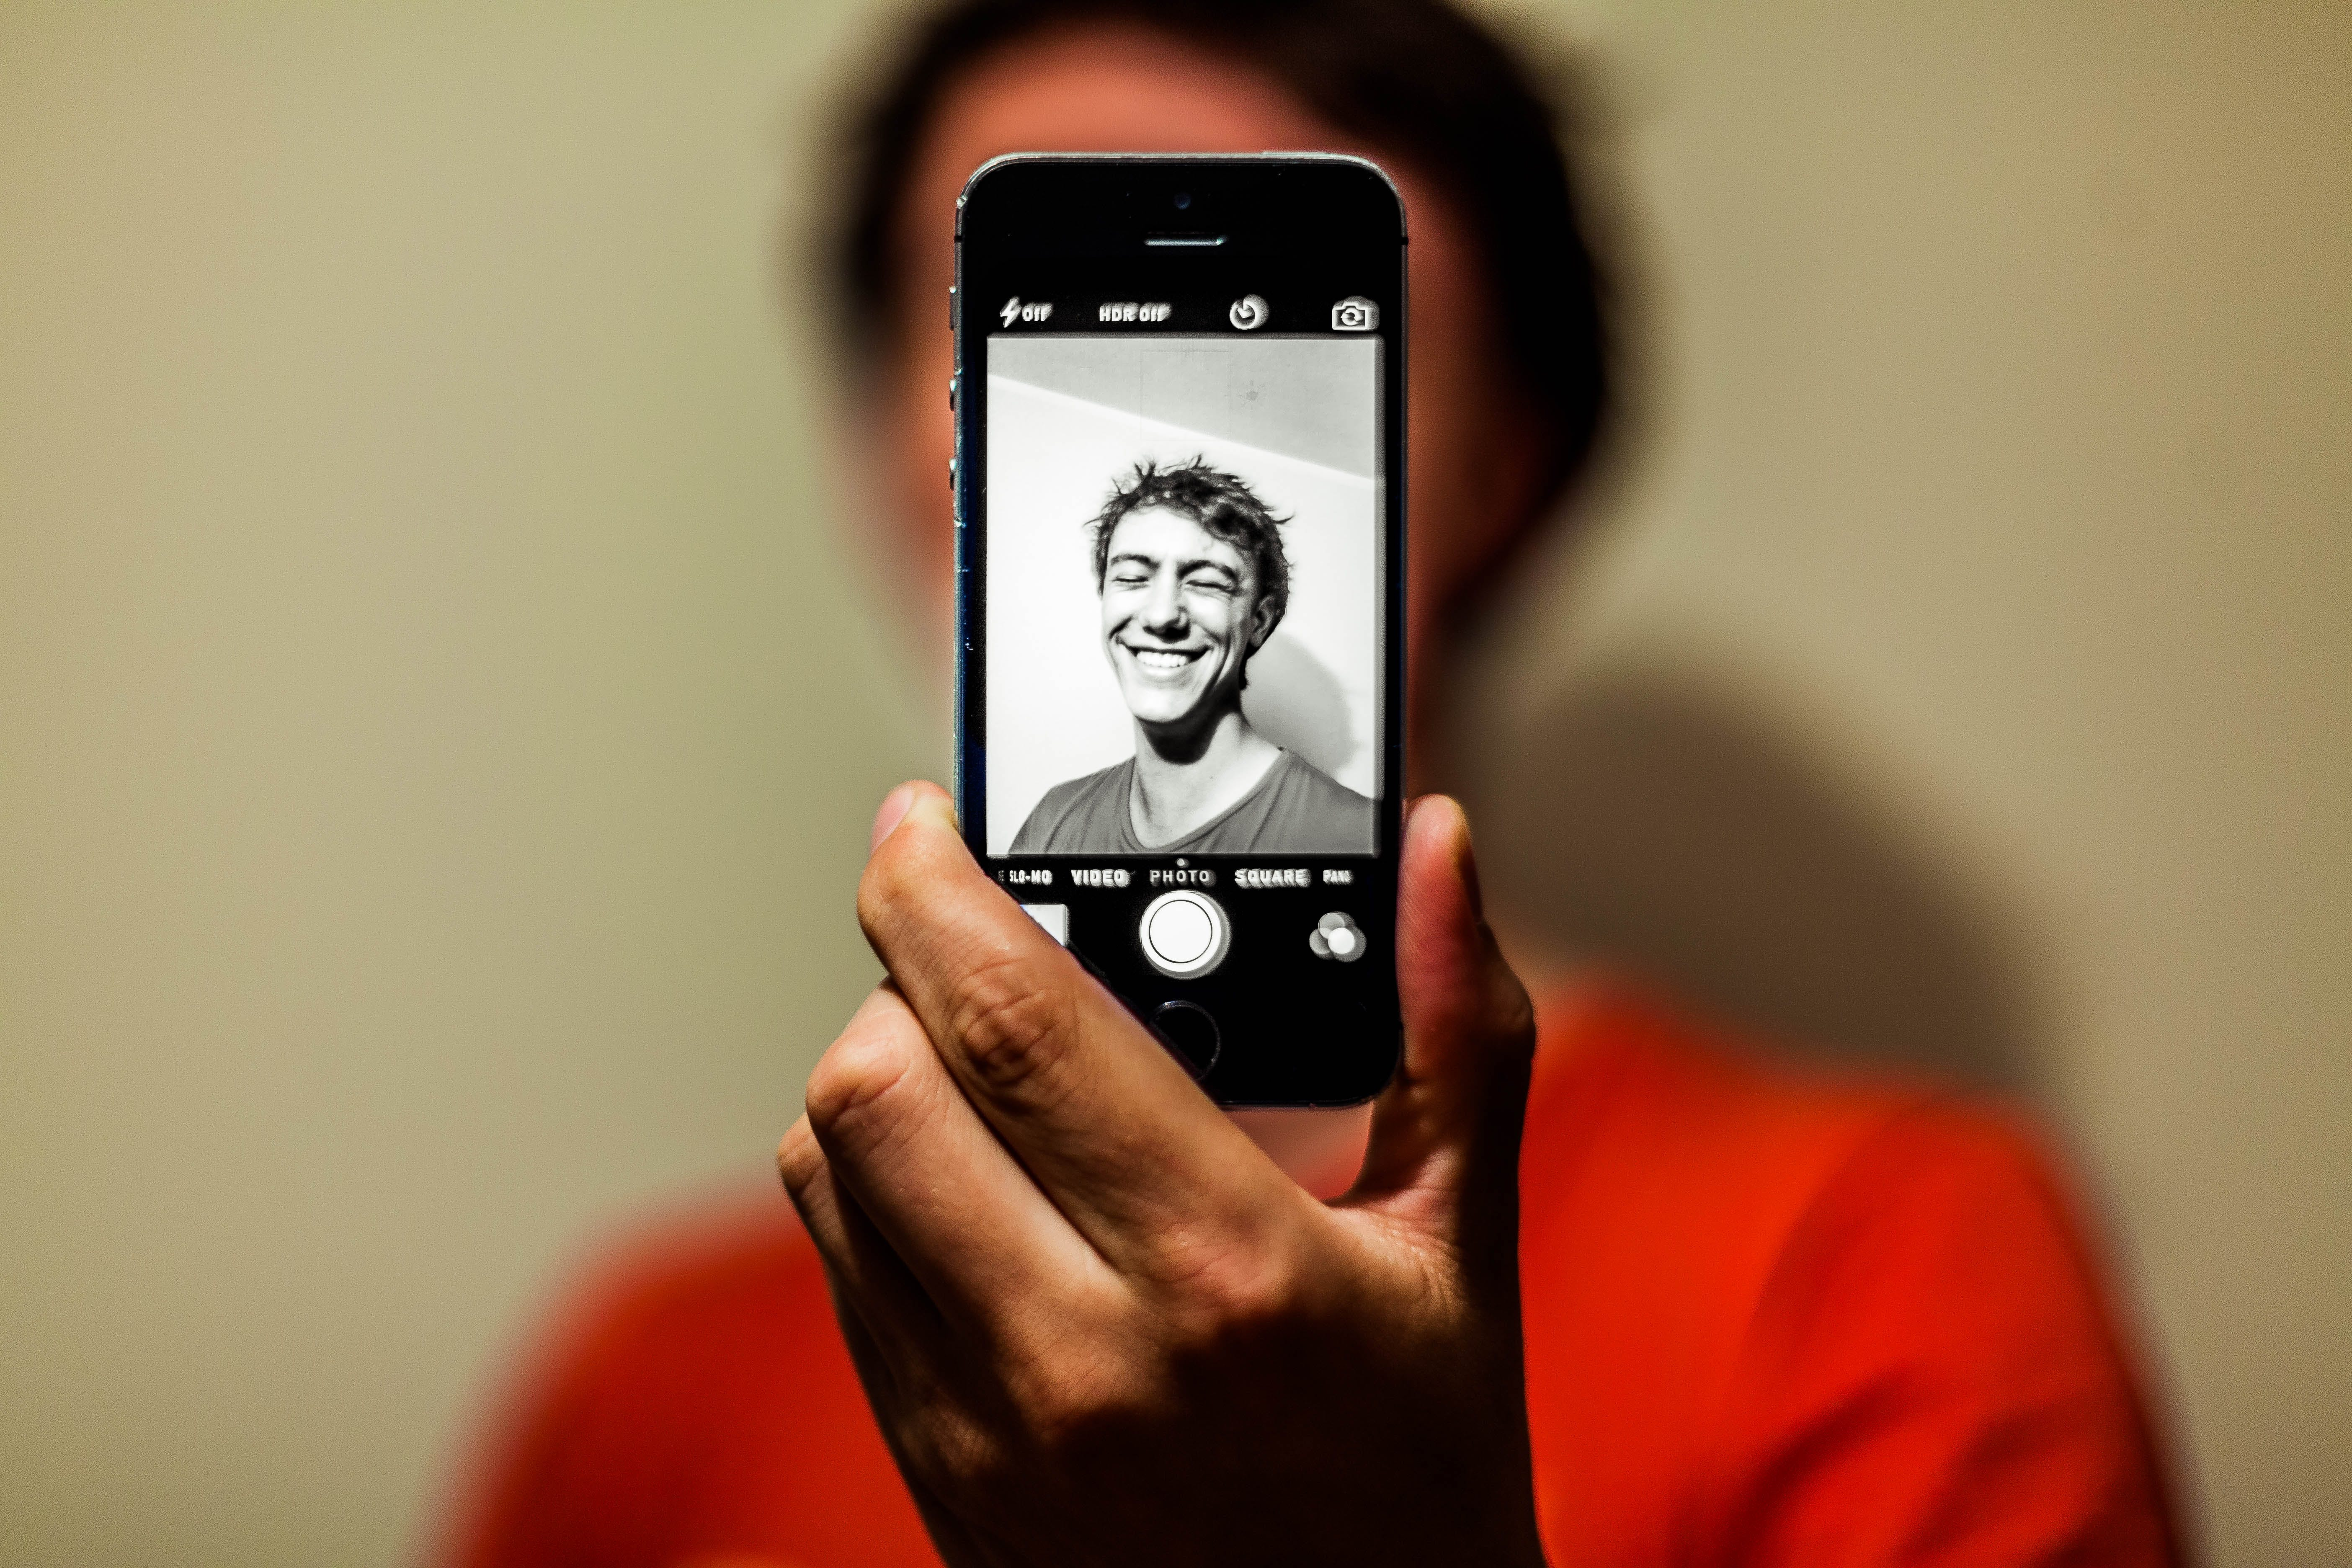 Man in Red Shirt Having Selfie on His Iphone in Grayscale Mode